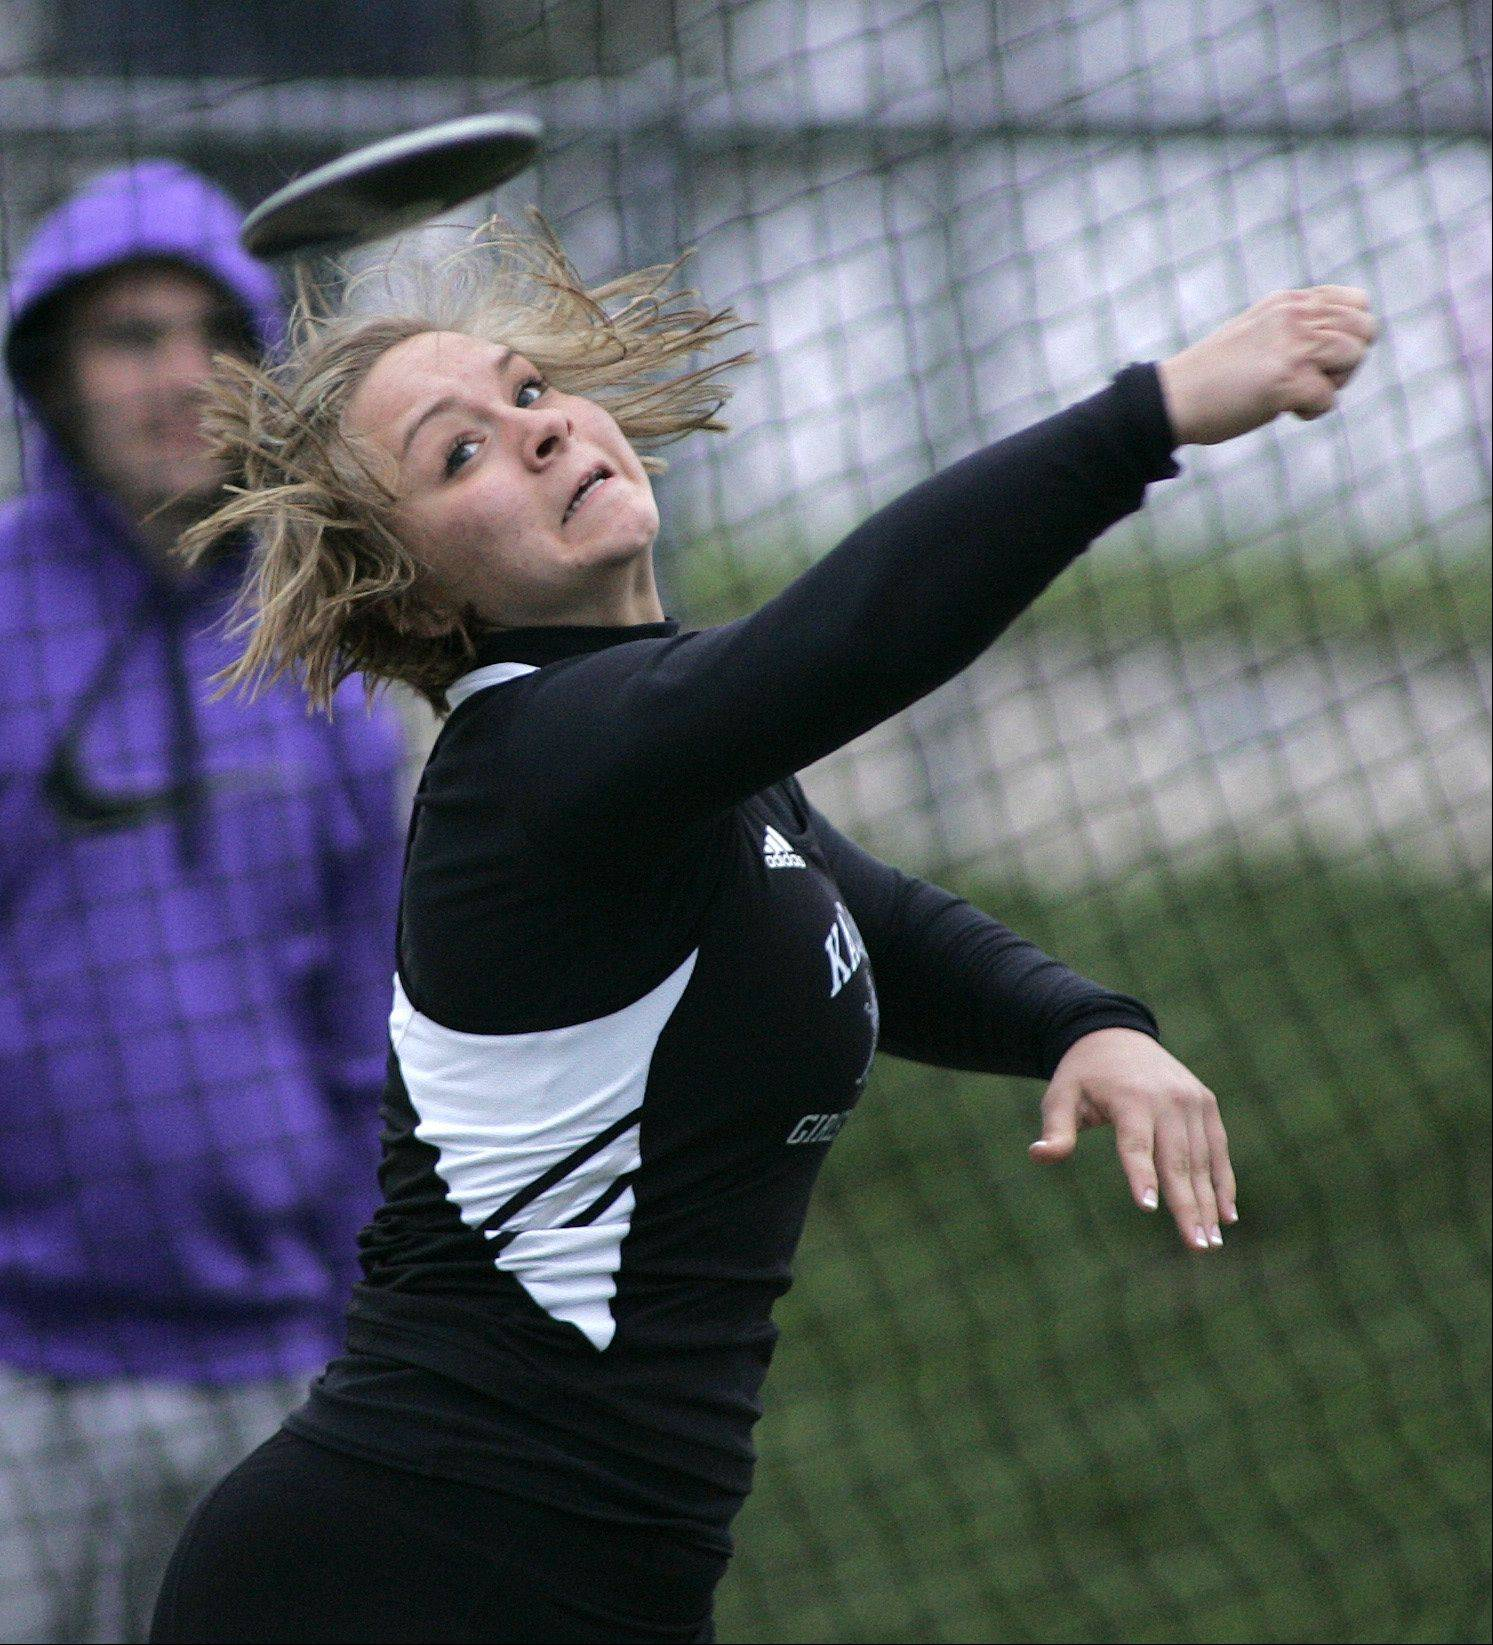 Kaneland's Elle Tattoni competes in the discus during the Burlington Central girls track sectional Friday.